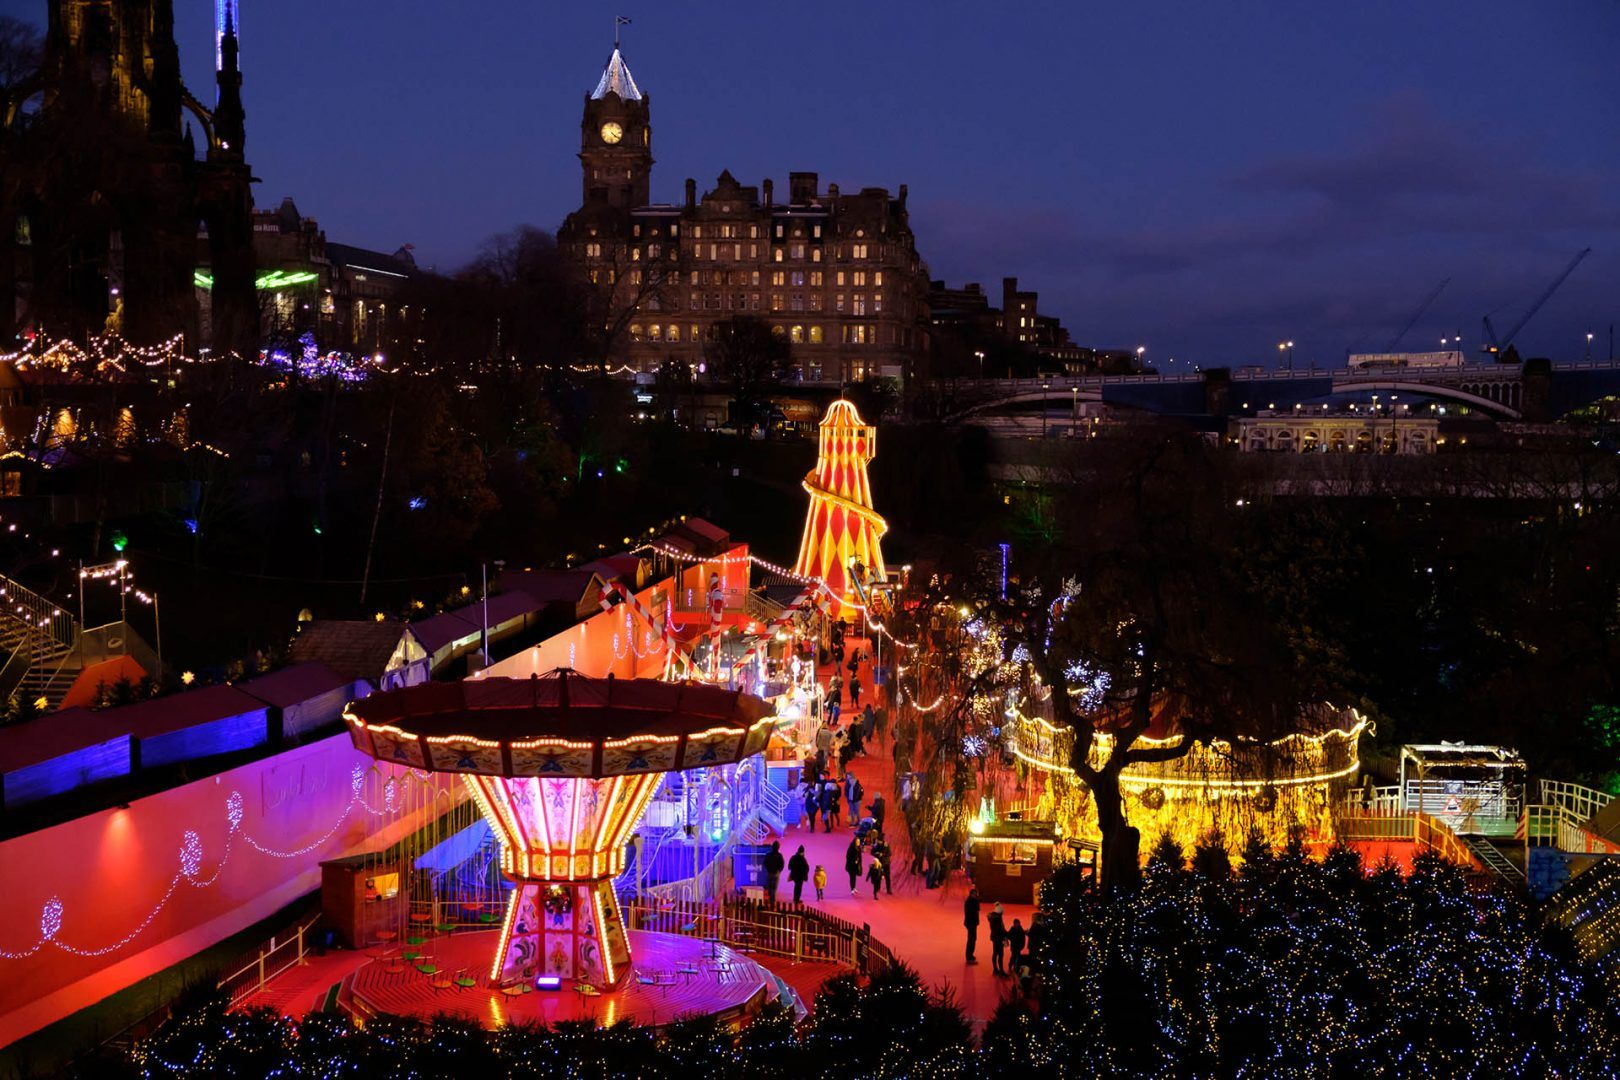 Fountain Of Life Christmas Play 2021 20 Of The Most Picturesque Christmas Destinations Rough Guides